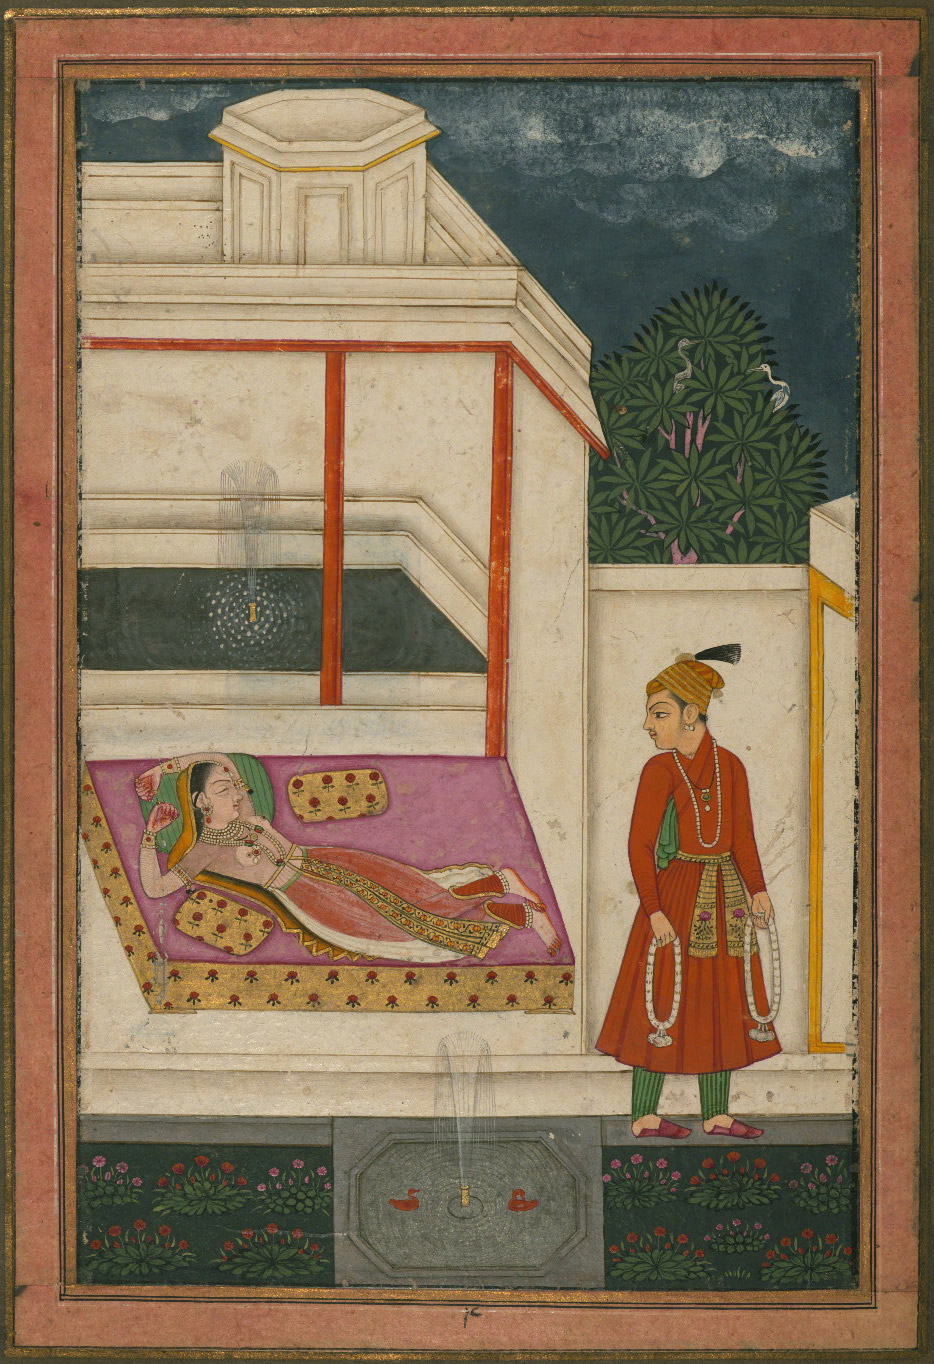 Lalita Ragini - Miniature Painting, Deccan School, Ragamala Series, 19th Century